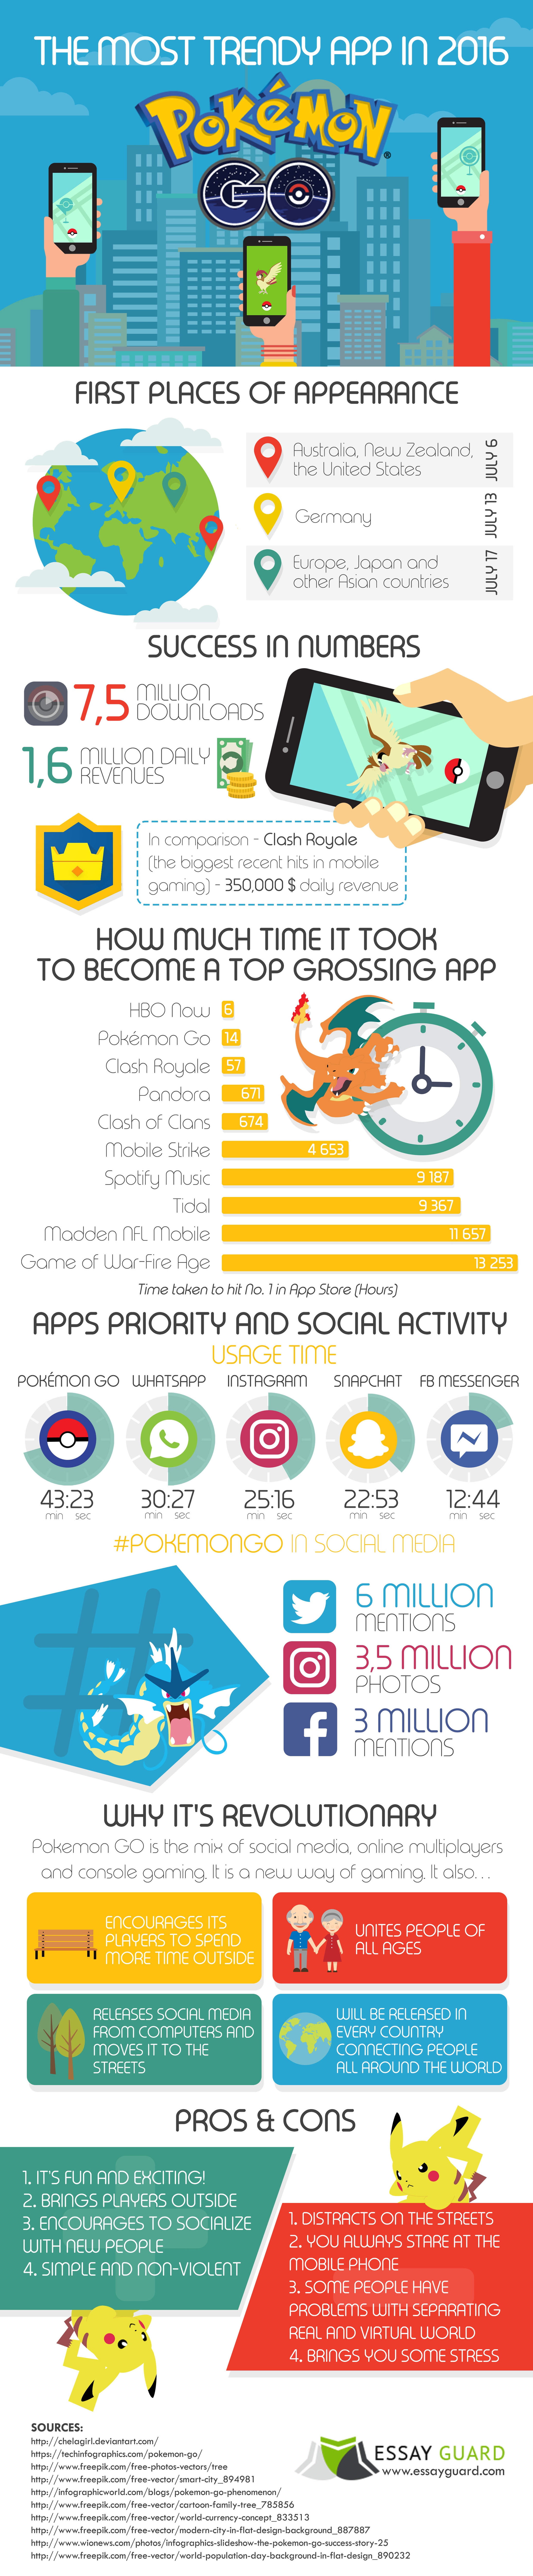 Why Pokemon GO is so popular Infographic